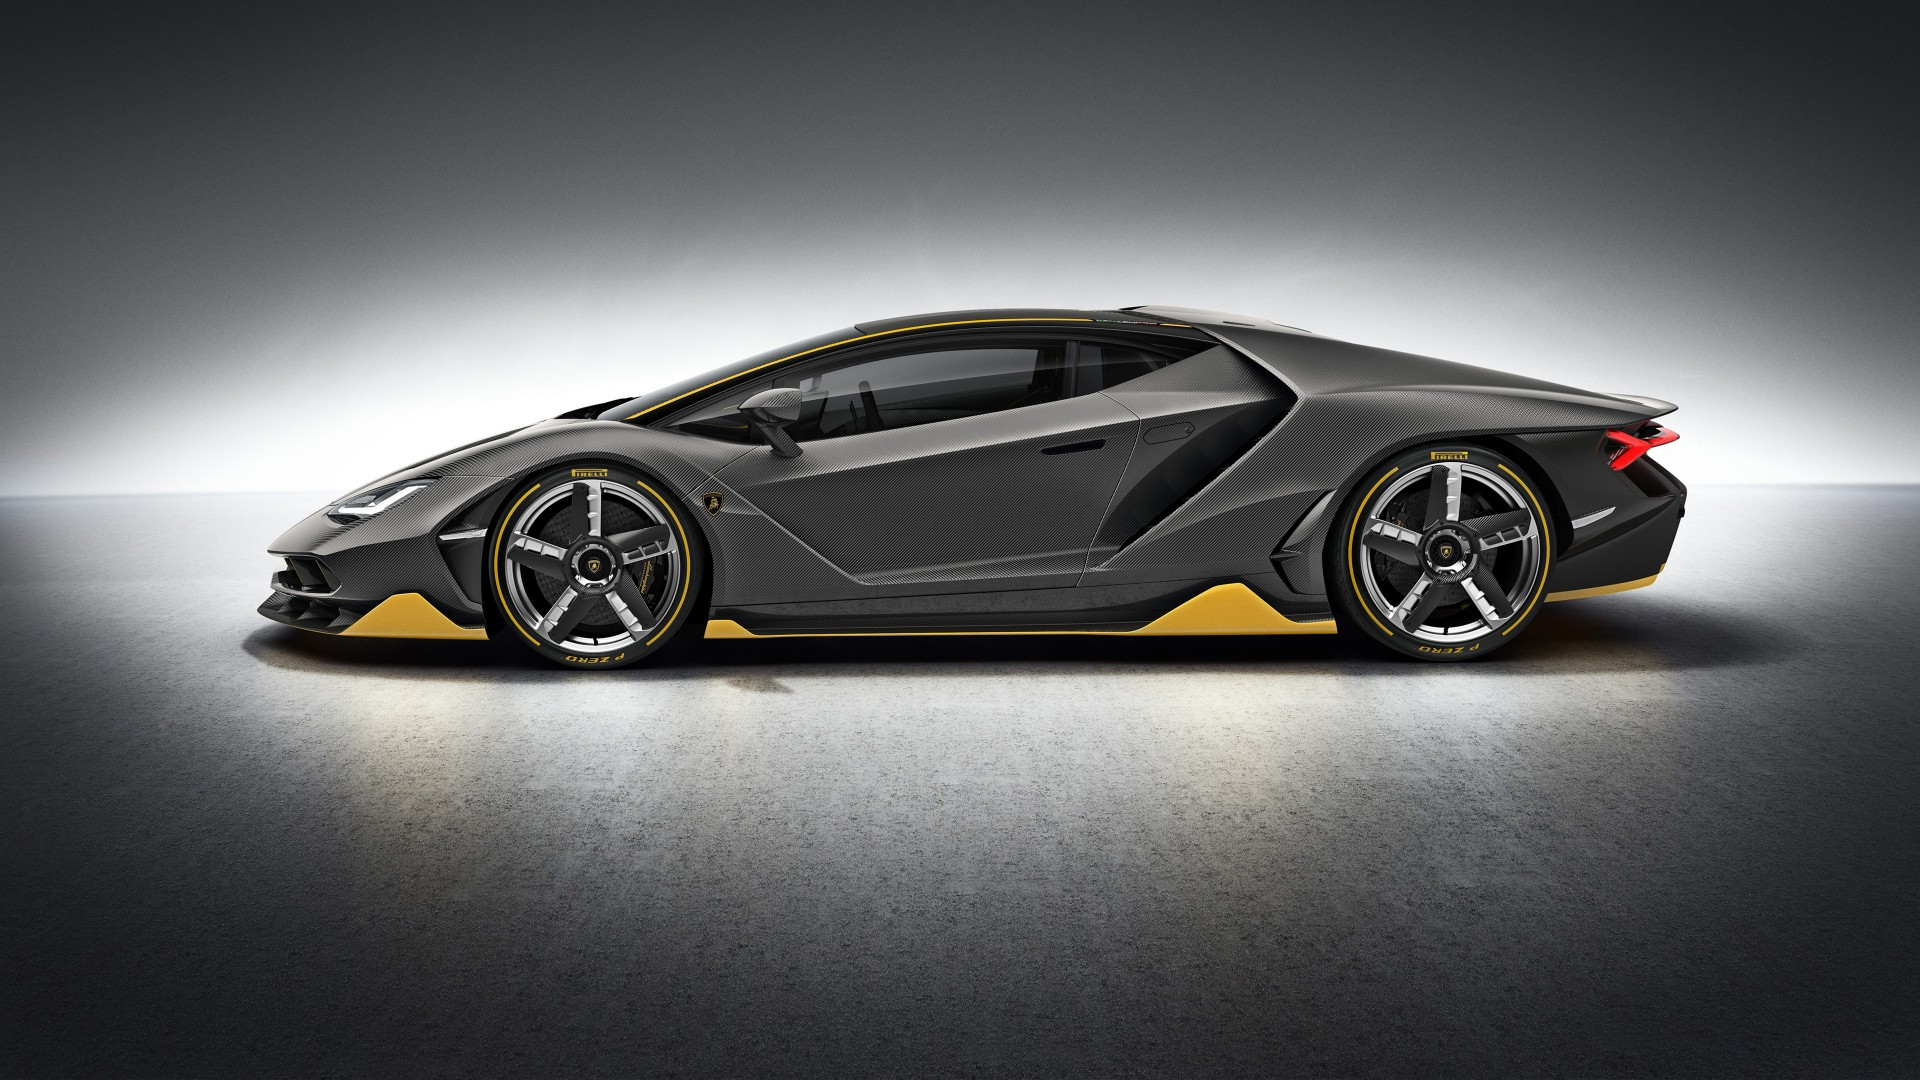 2016 Lamborghini Centenario Lp 770 4 3 Wallpaper Hd Car